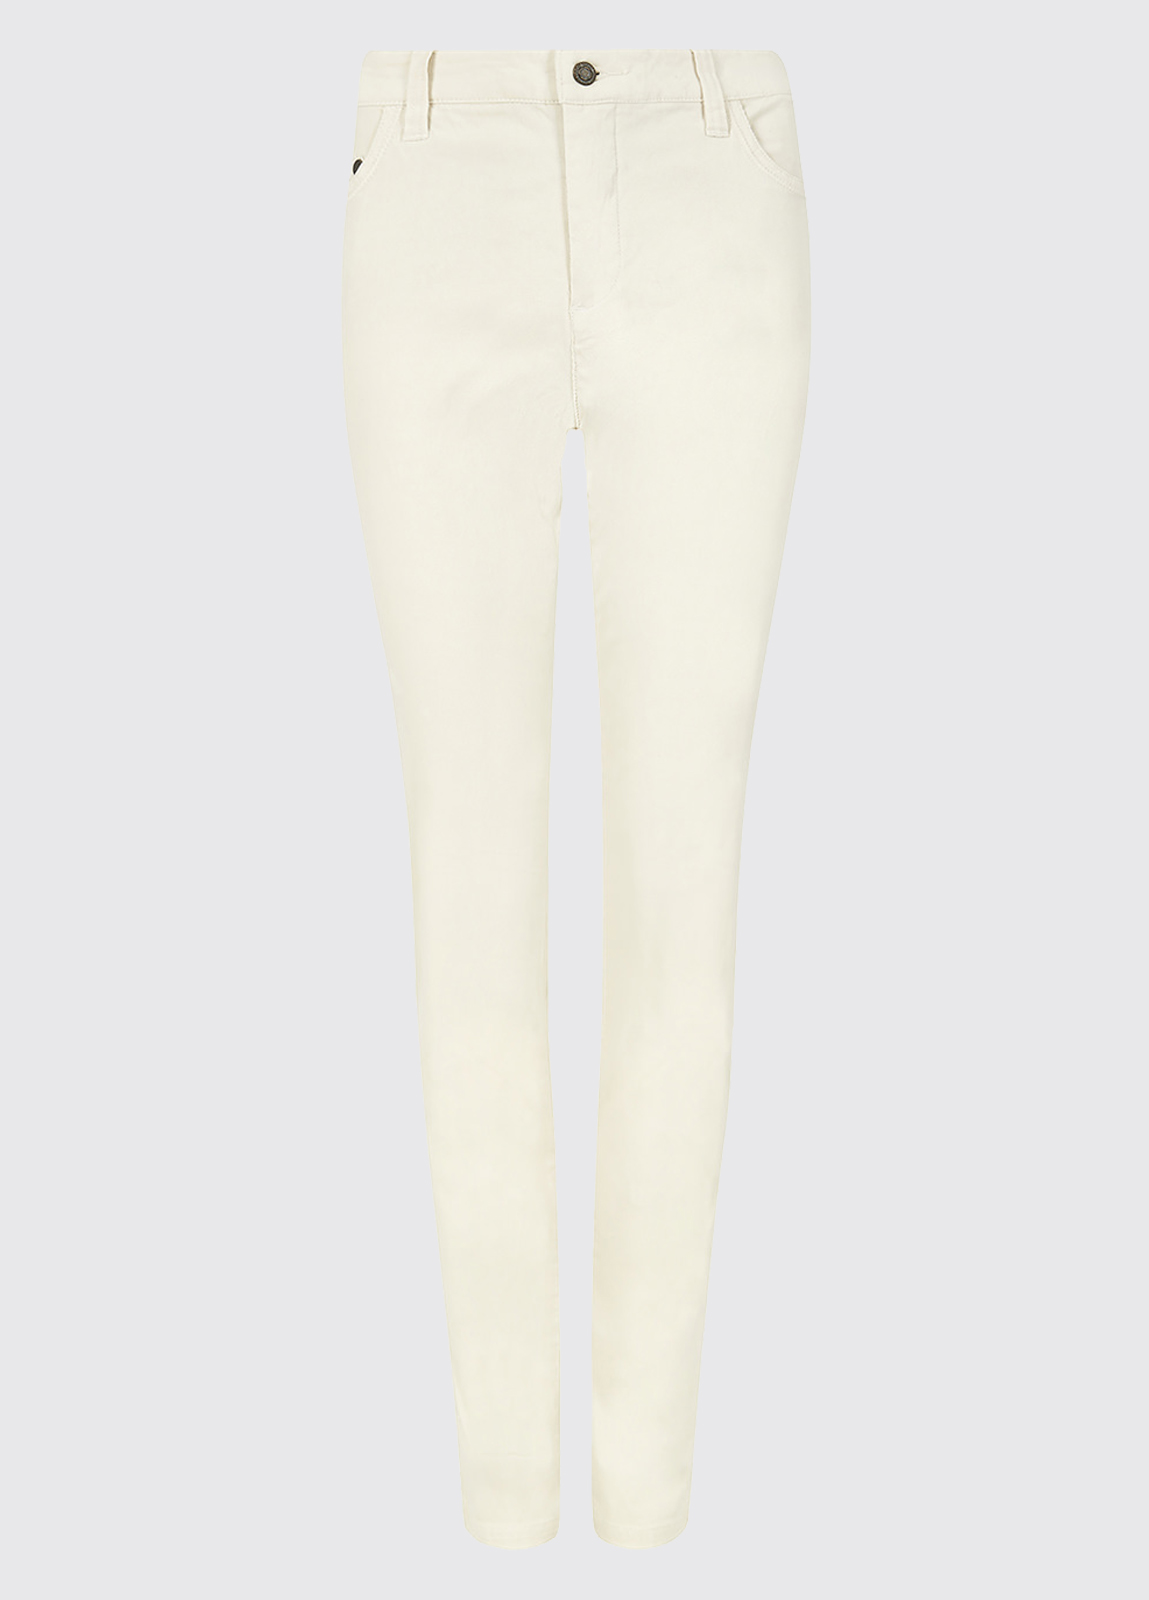 Honeysuckle Jeans - Sail White